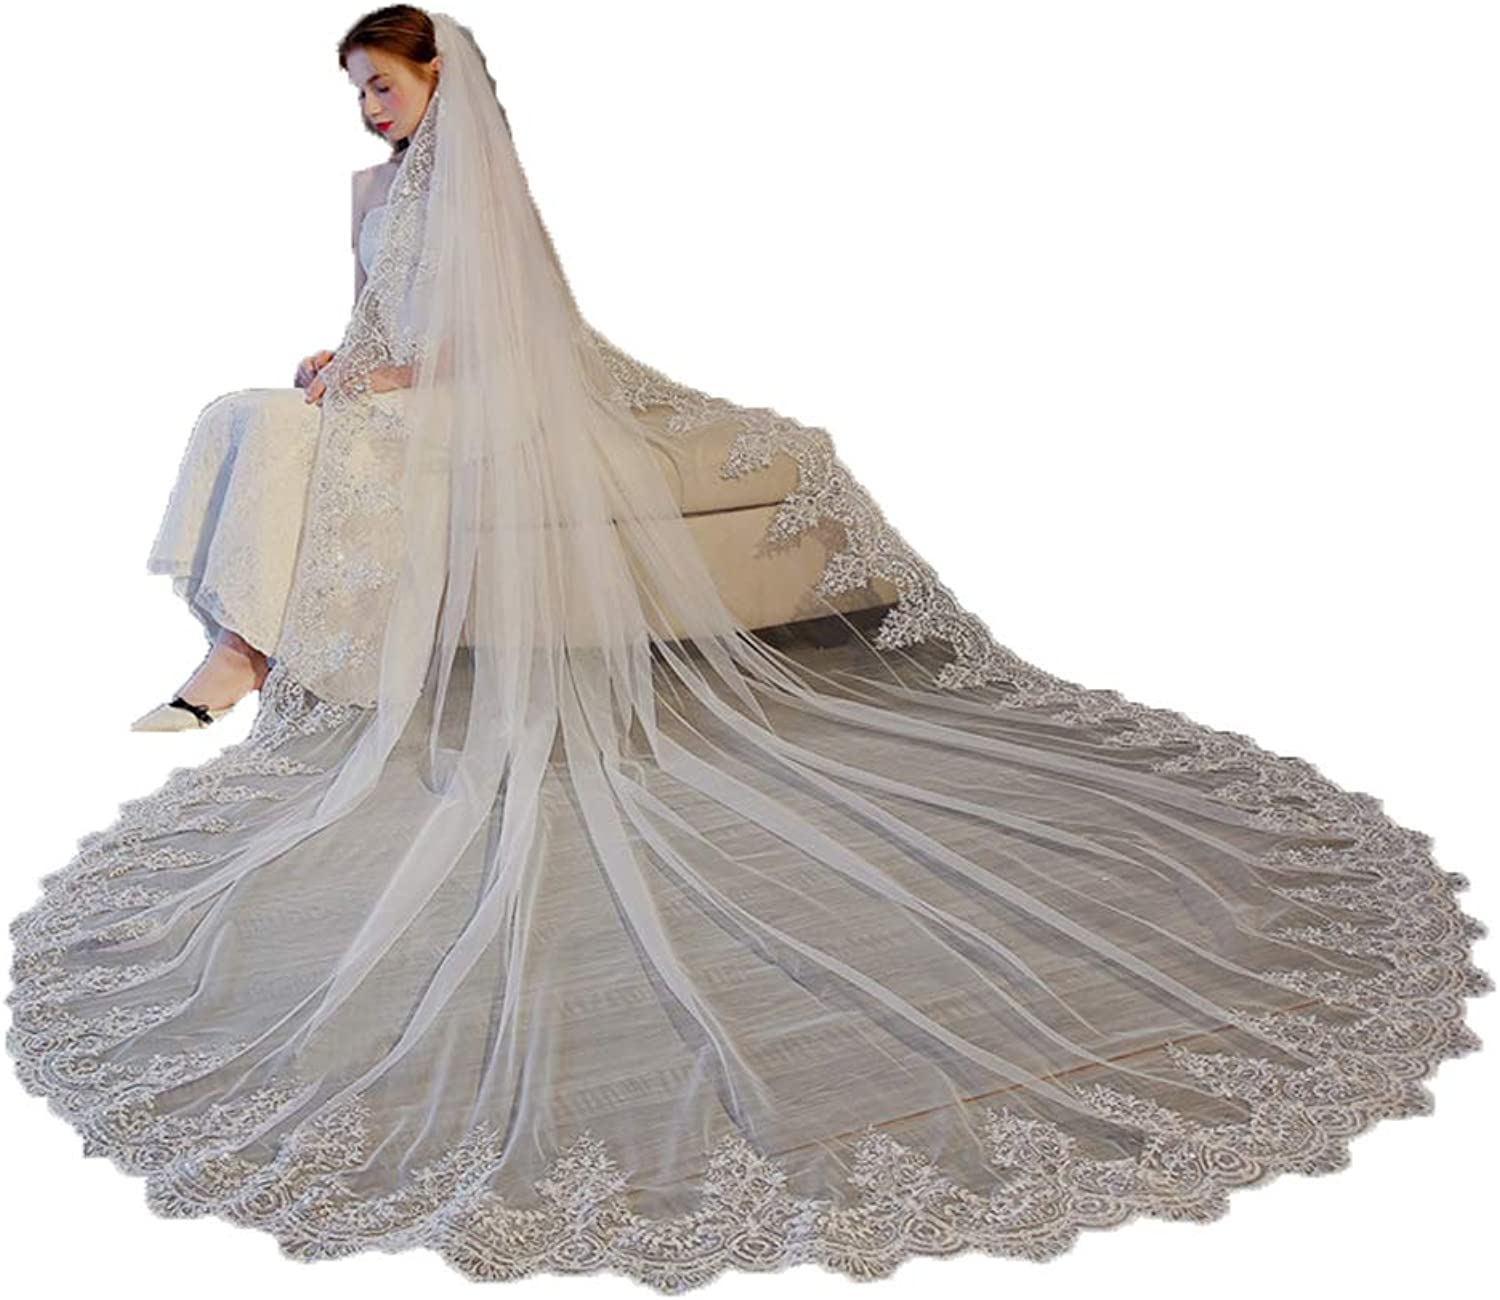 3 Meter White Ivory Cathedral Wedding Veils Long Lace Edge Bridal Veil with Comb Wedding Accessories Bride Mantilla Wedding Veil,White